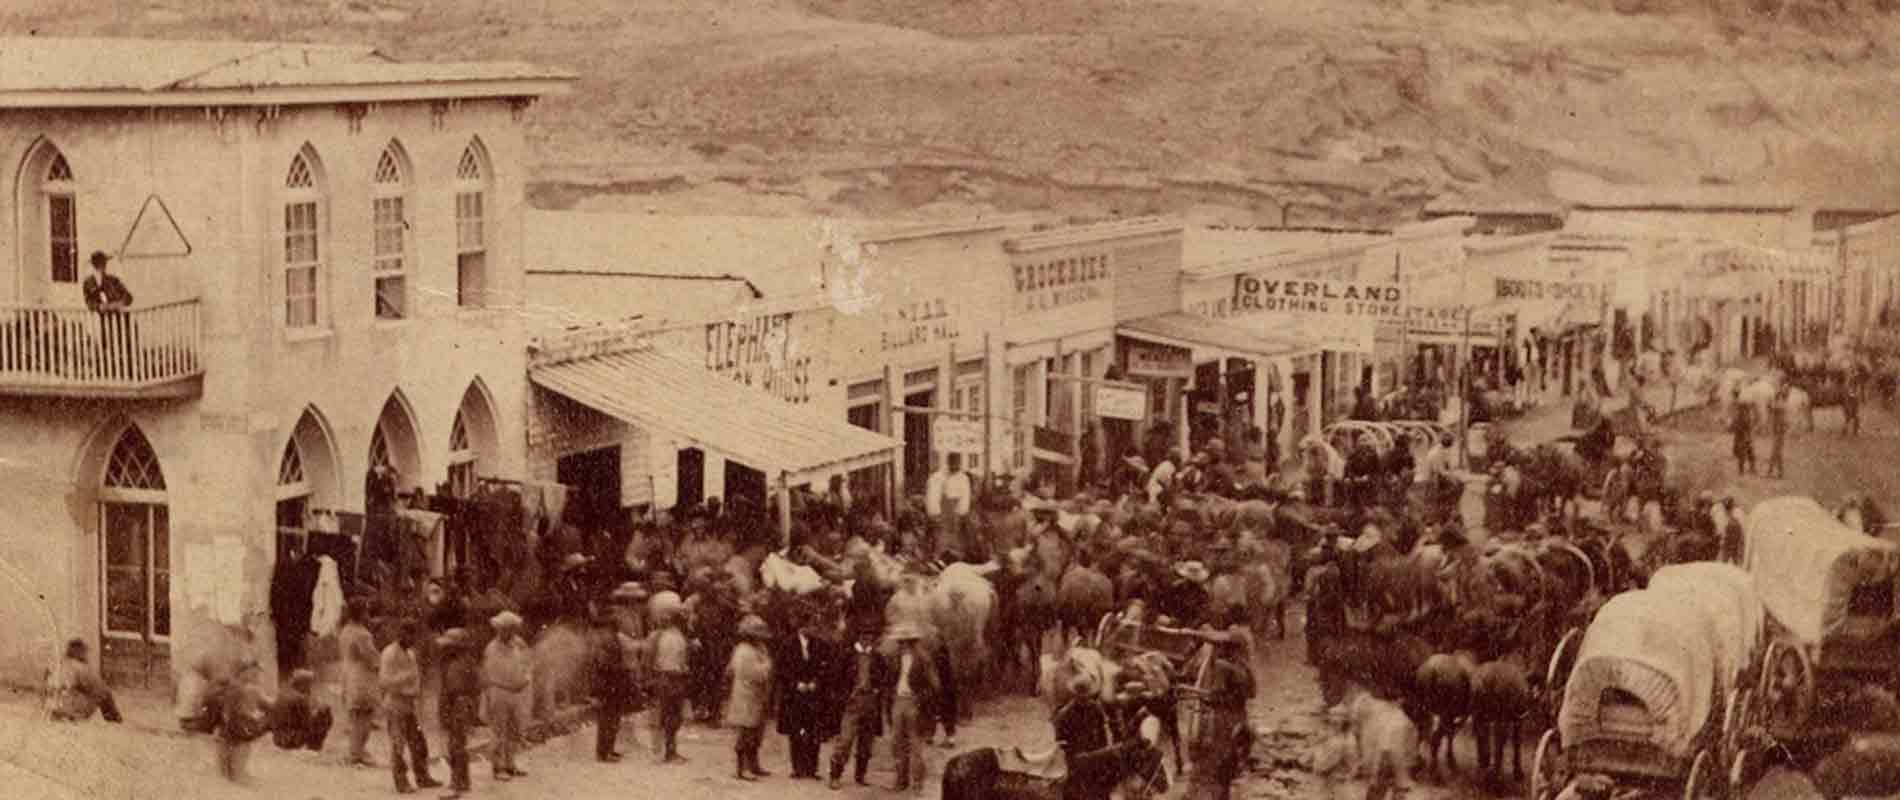 Early Virginia City